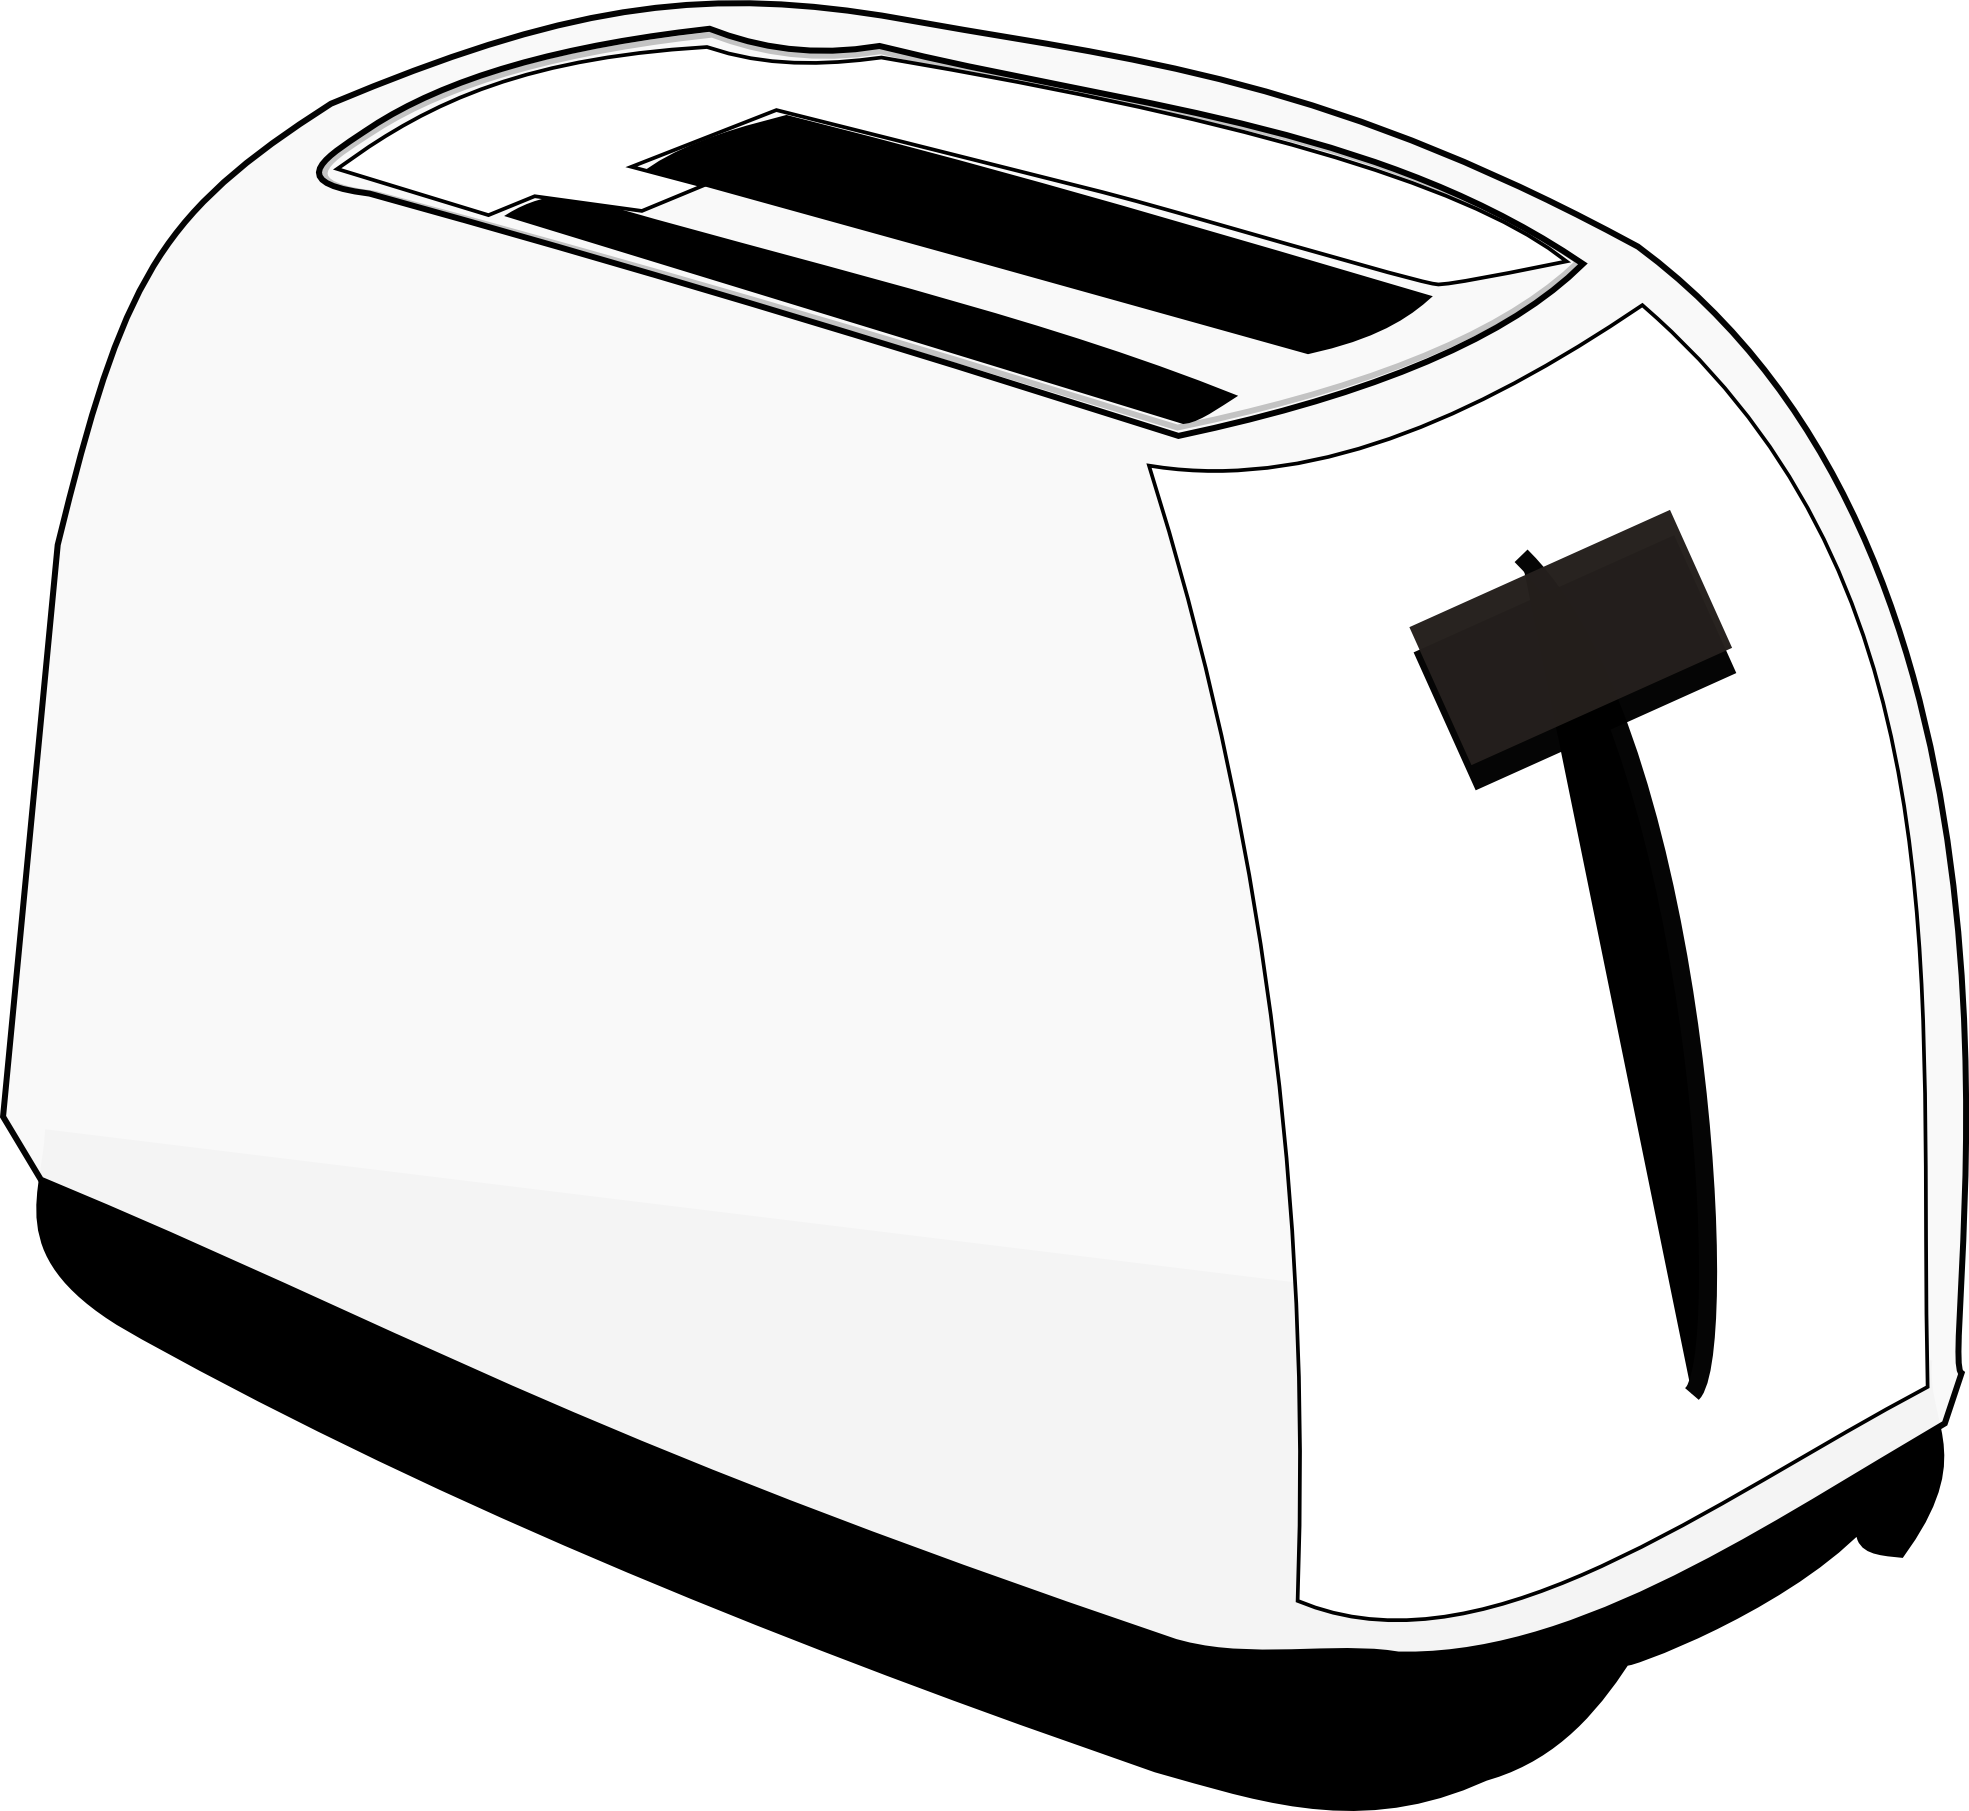 13 Toaster Vector Graphic Images